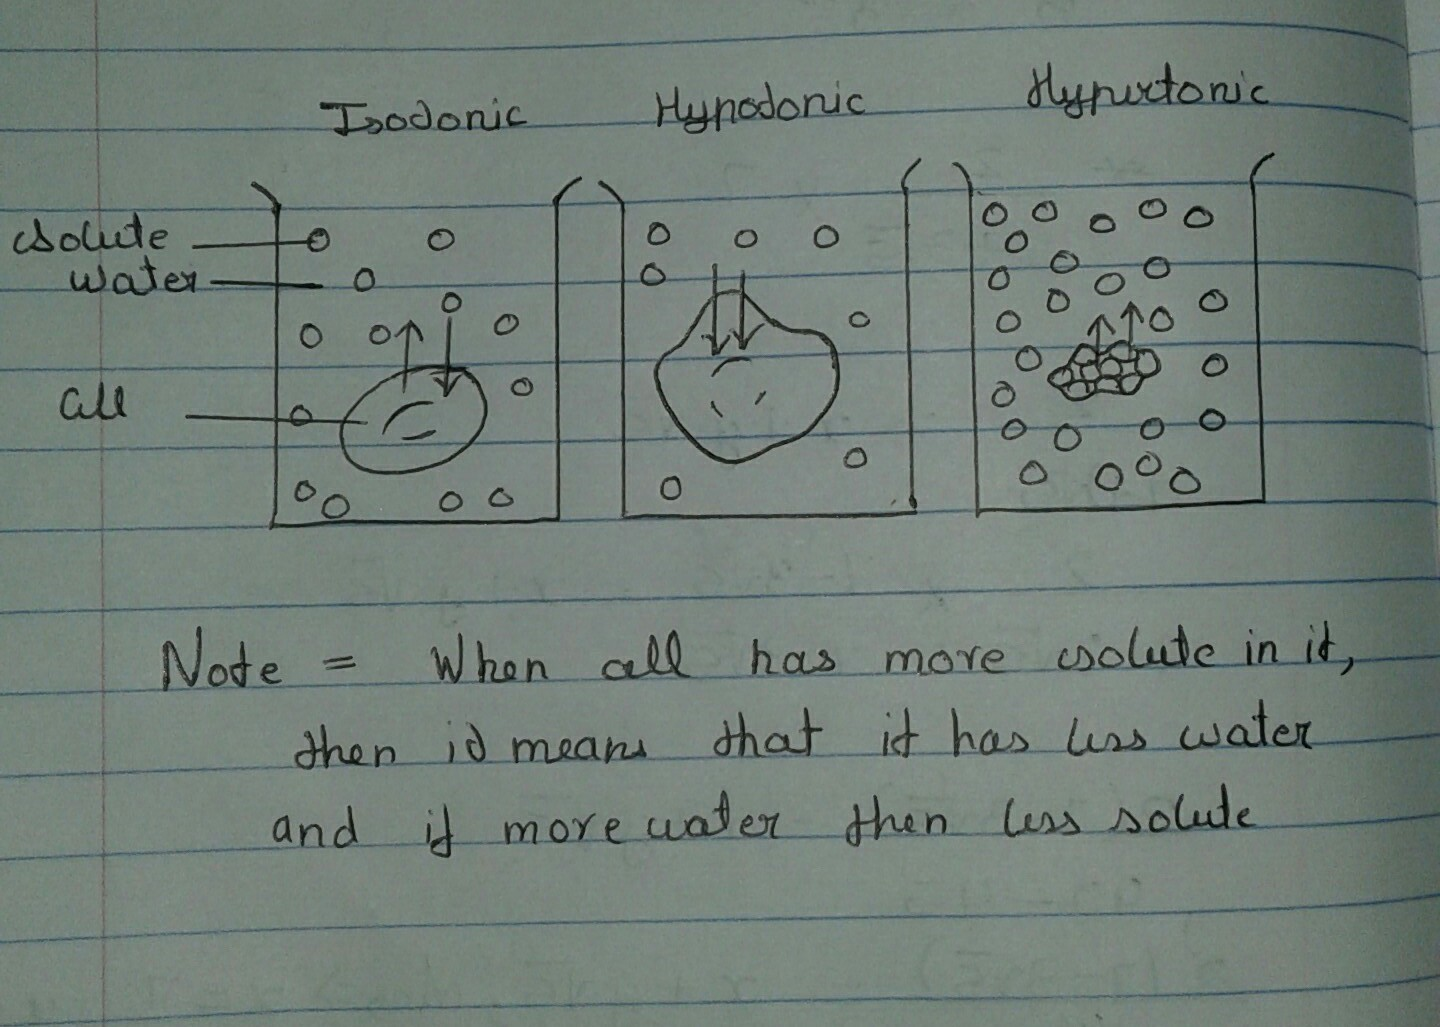 Write A Short Note On Hypertonic Hypotonic And Isotonic